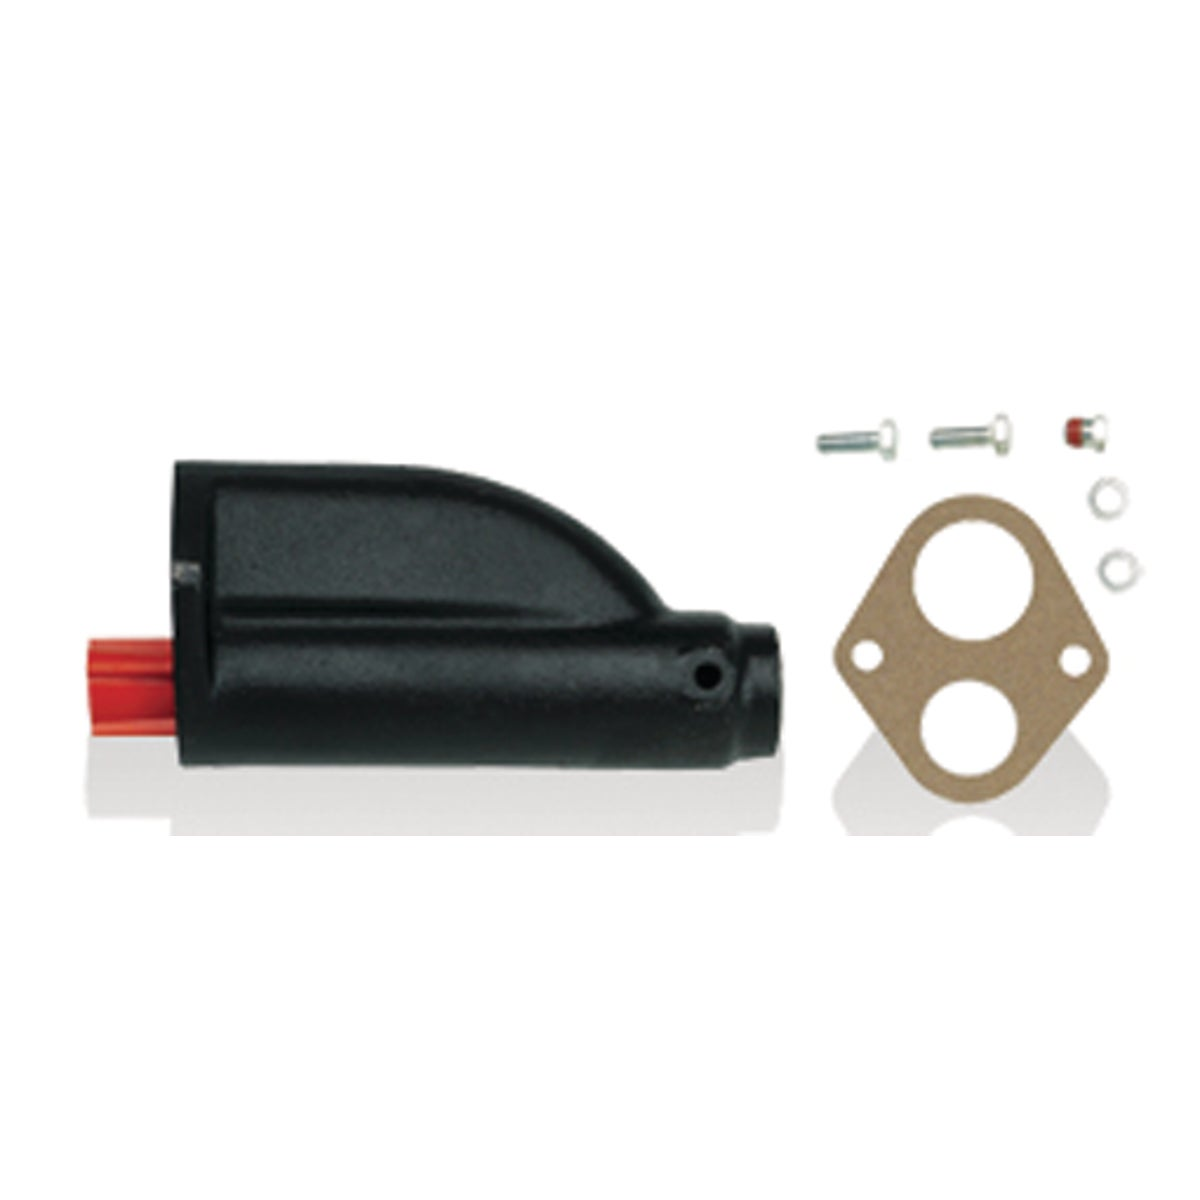 Wayne Home Equipment 2-PIPE JET ASSEMBLY 56326